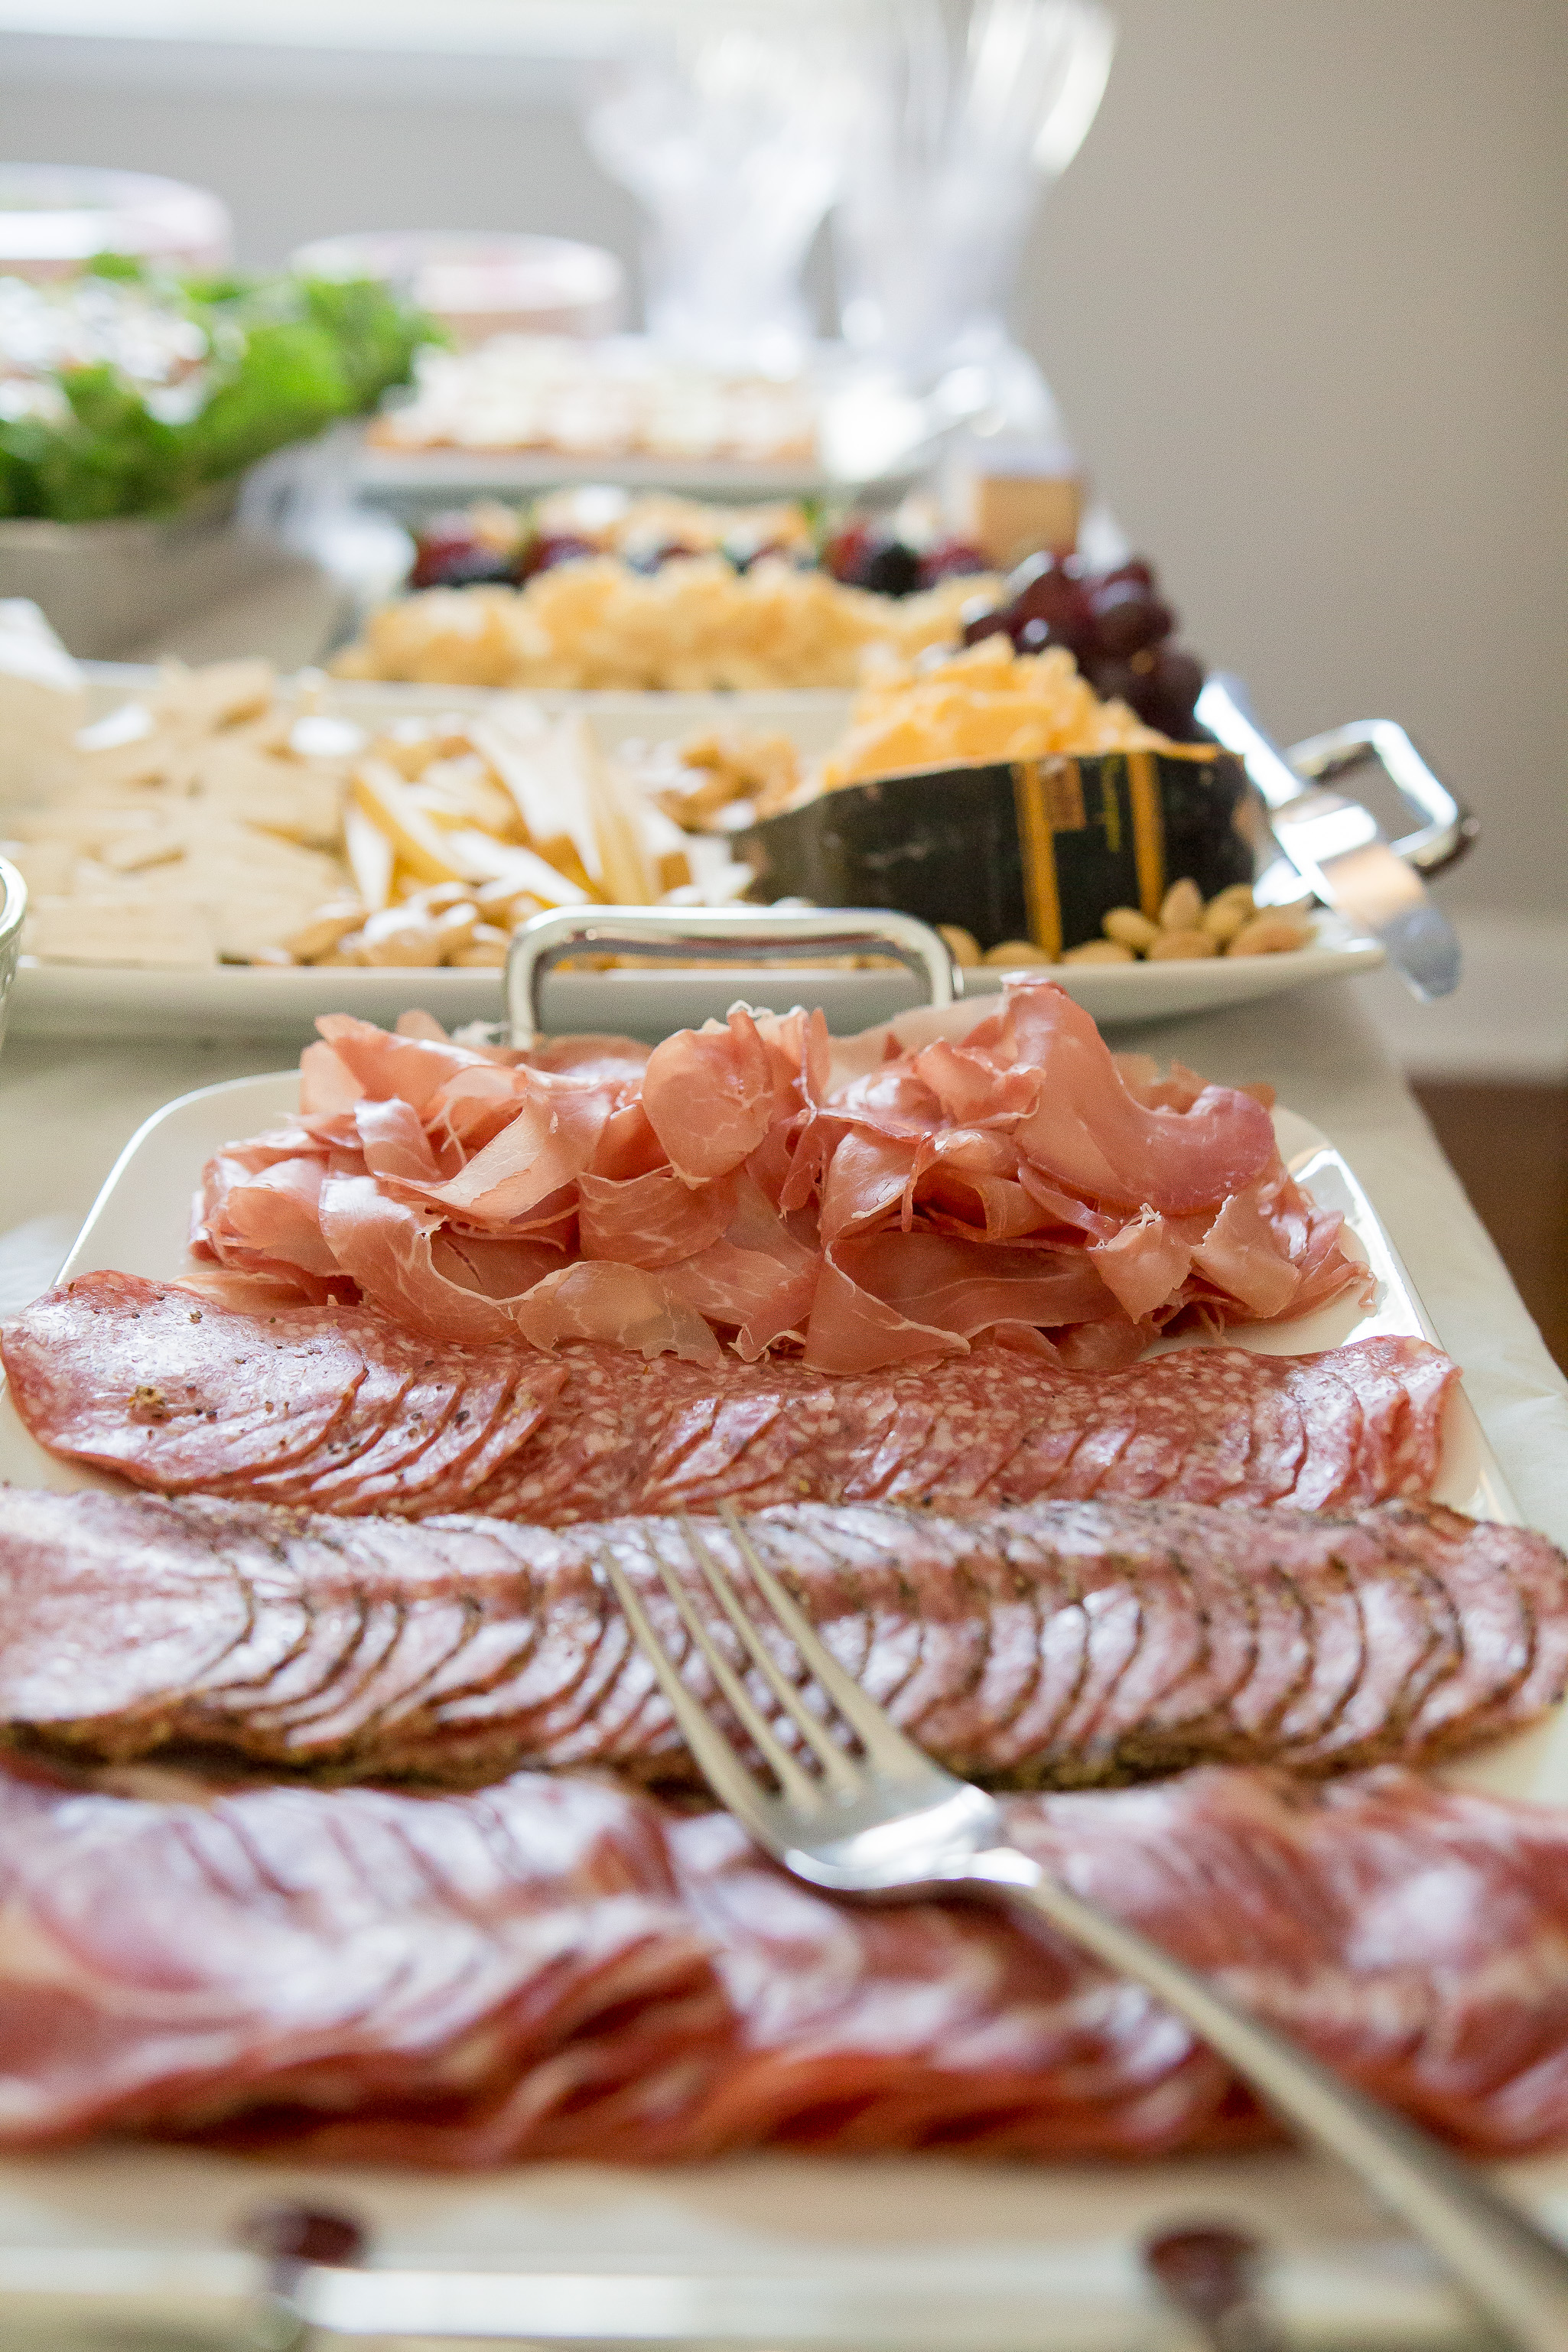 Other foods that go well with cheese, like charcuterie, disappear quickly!